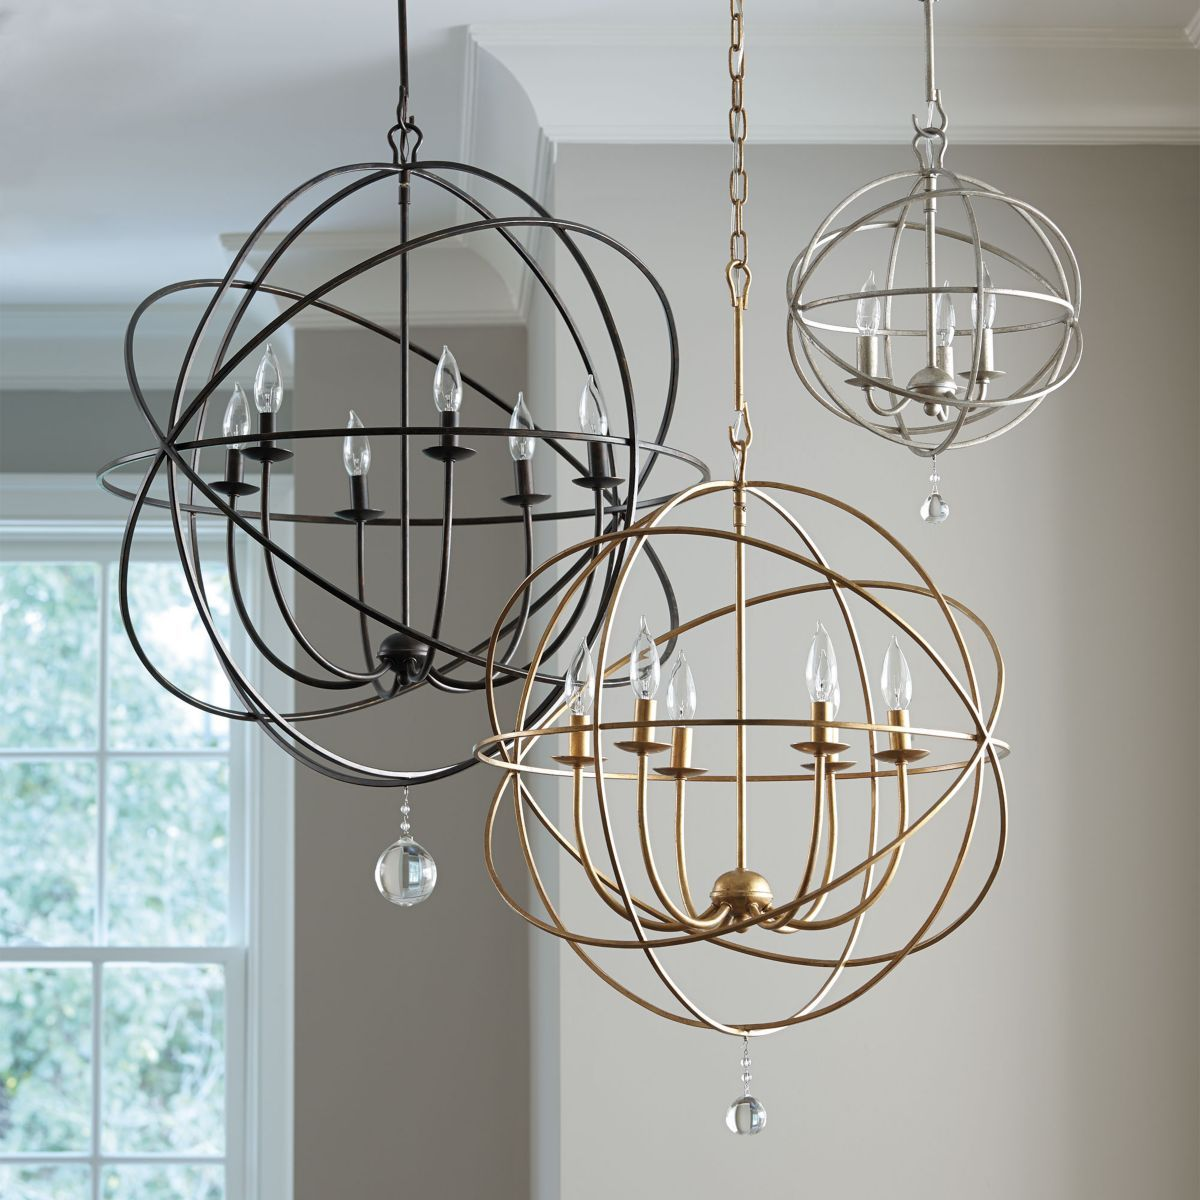 Extra Large Orb For The Living Room In Brush Nickel Chandelier New Entry